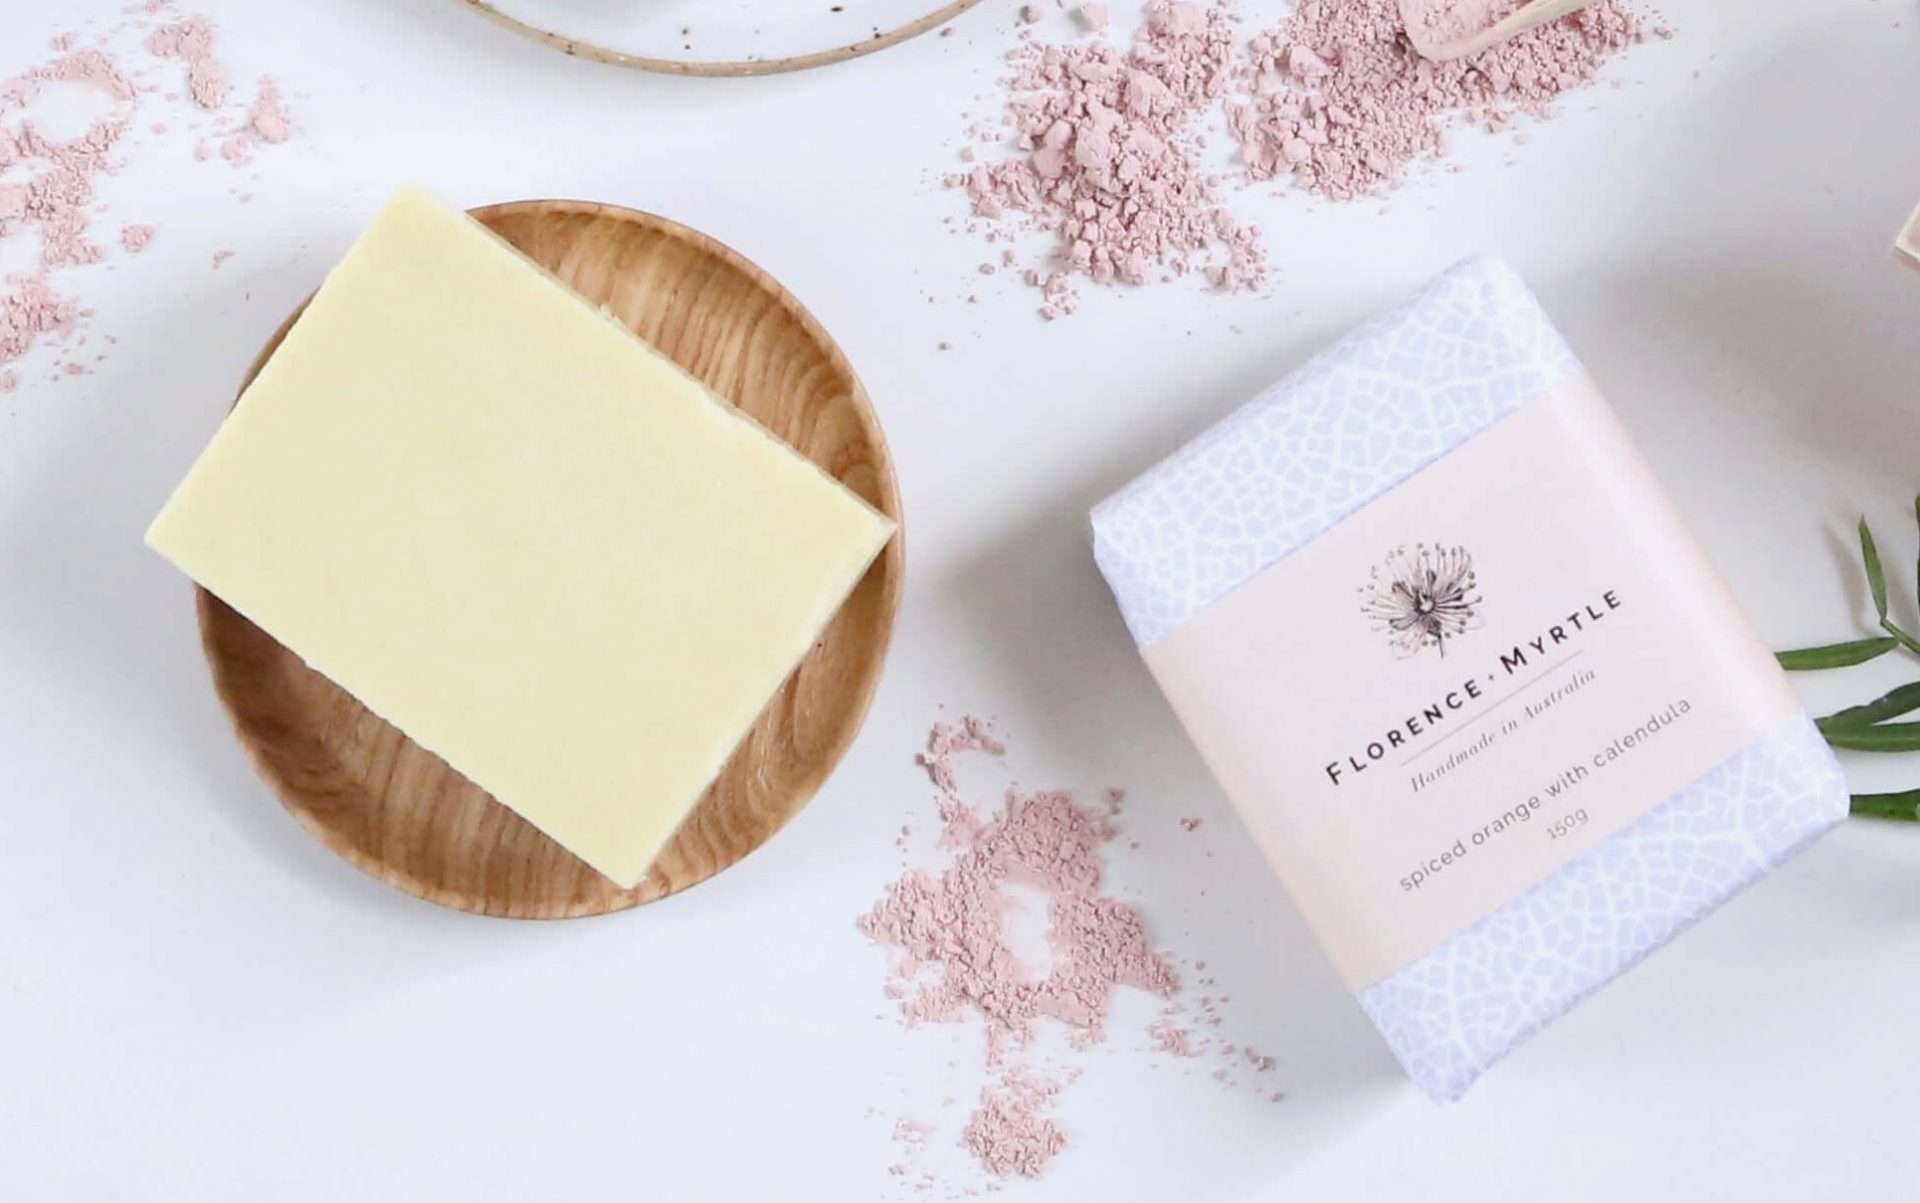 Florence + Myrtle Organic Shea Butter Soap Lemongrass Salt Bar